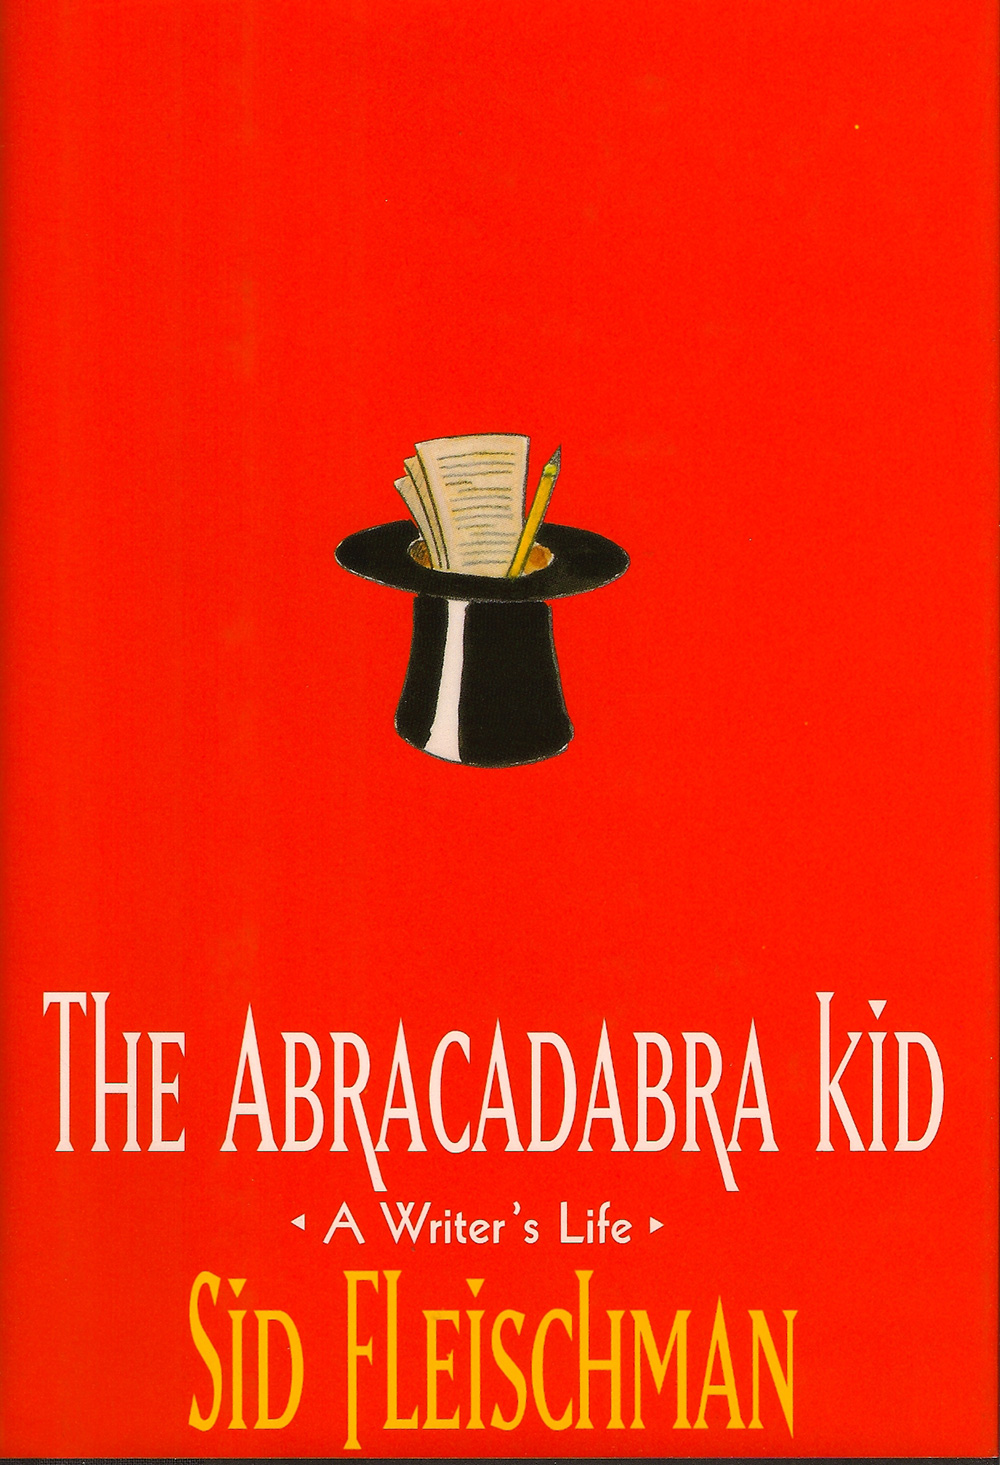 The Abracadabra Kid - The author's own highly engaging life, from being trapped in a magic trunk and sailing the South Pacific to starting his own magazine and working with Hollywood stars--not to mention writing children's books.